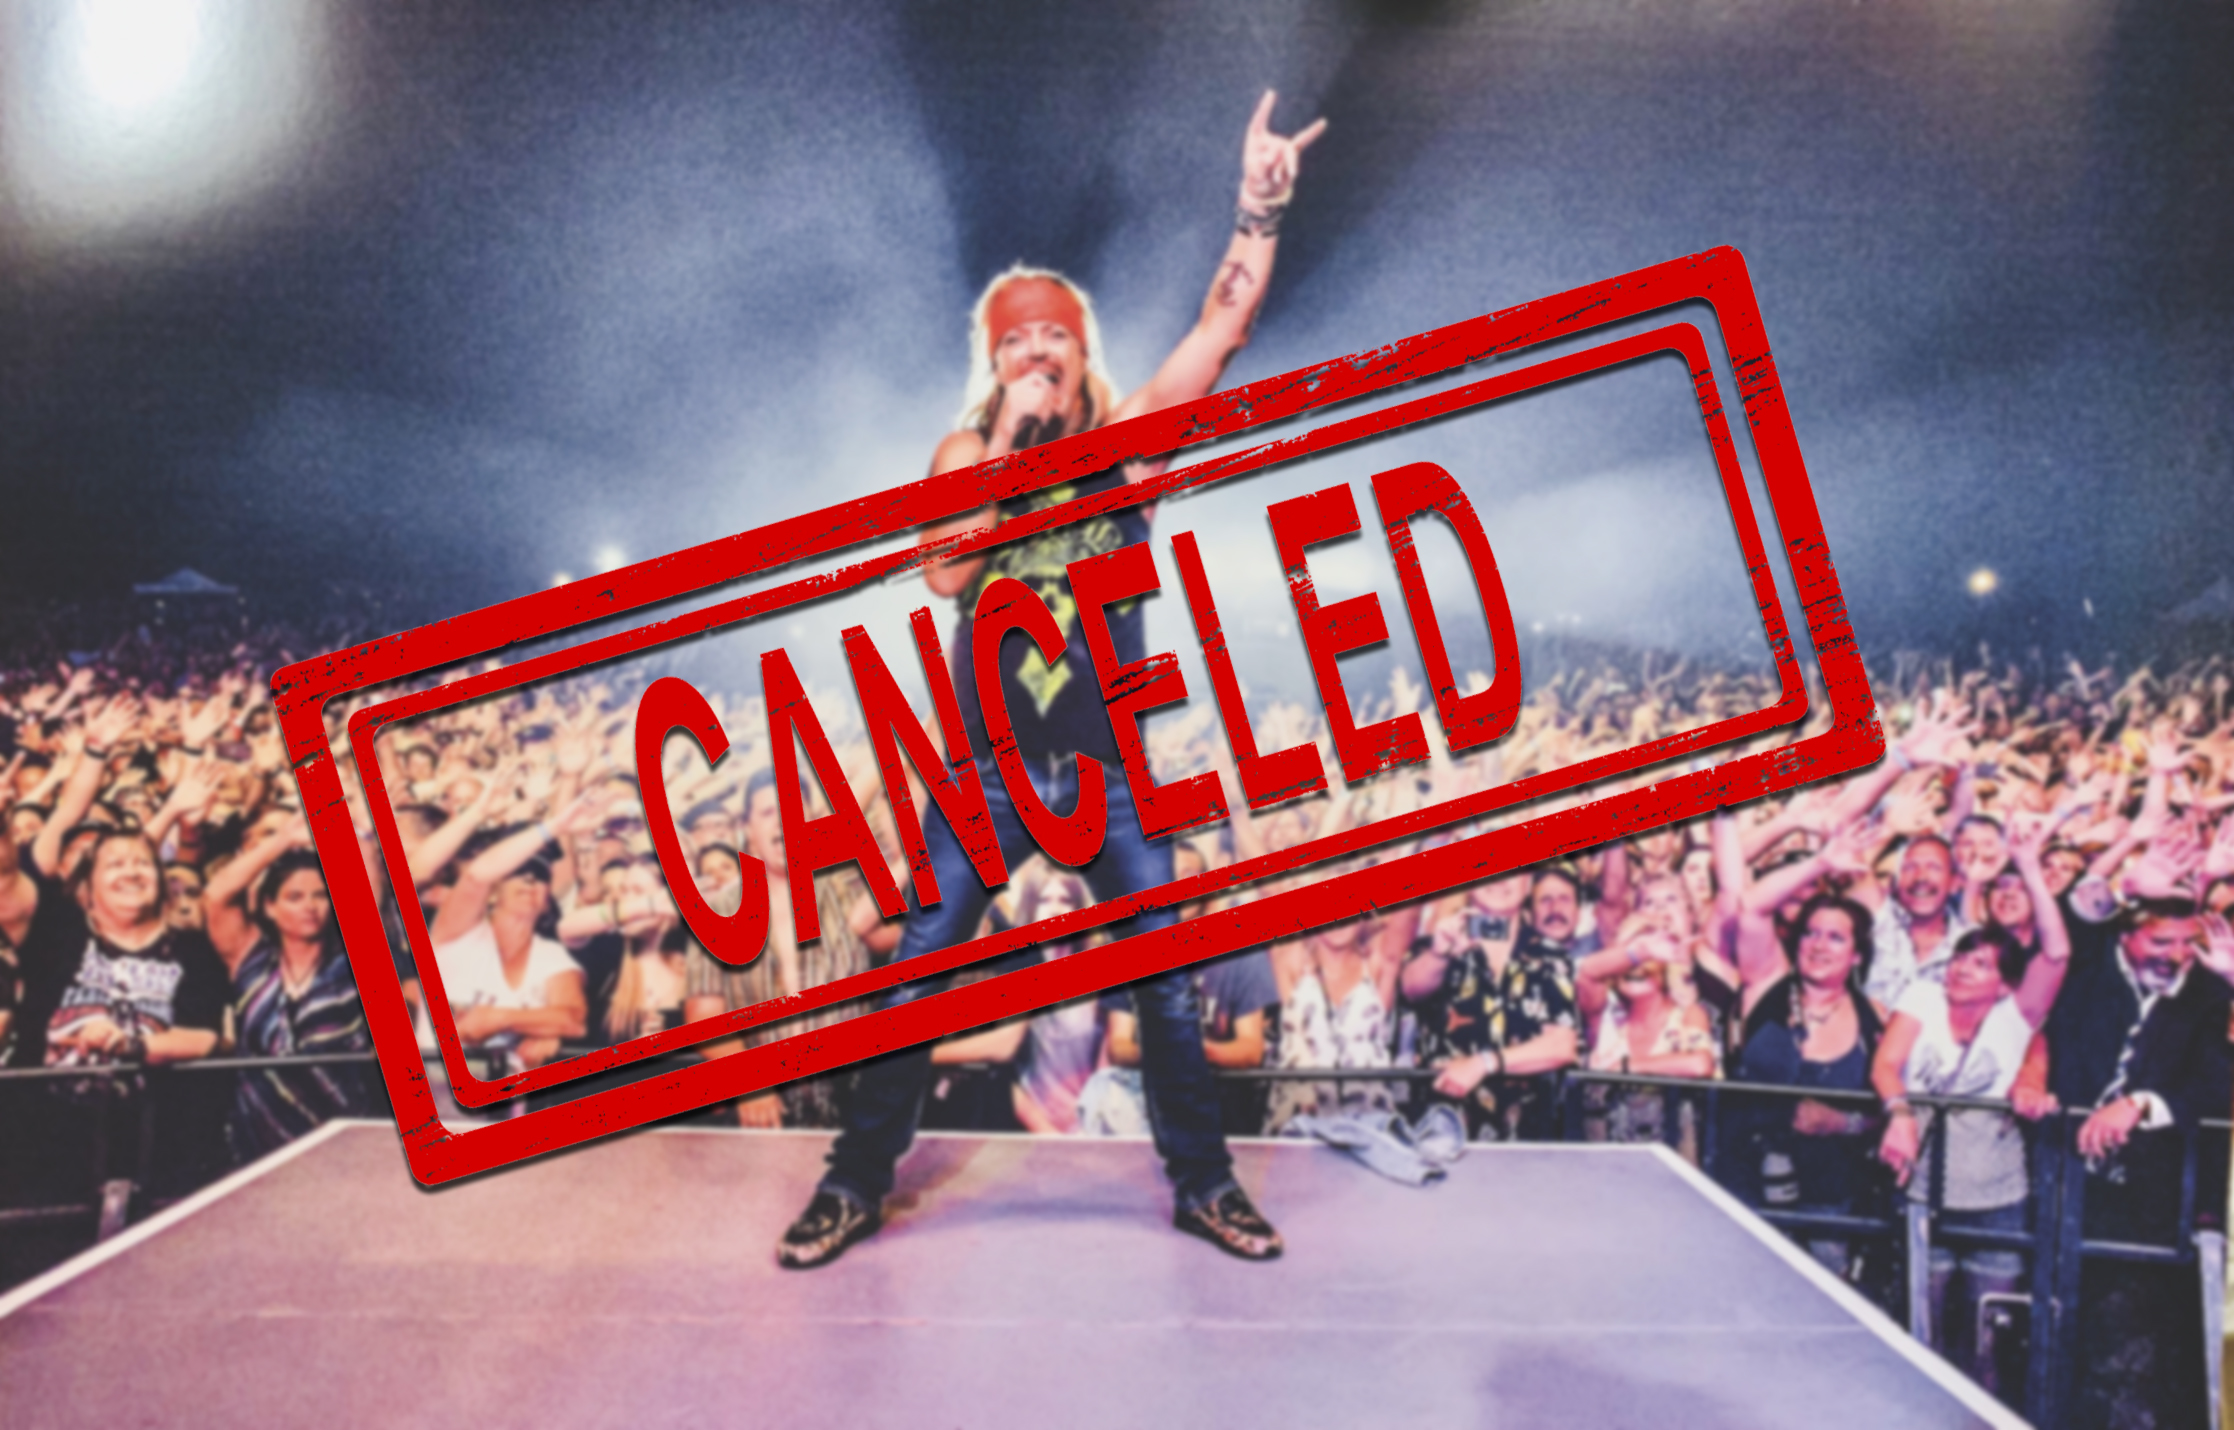 California Mid-State Fair announced Monday that Bret Michaels would not perform as part of the summer concert series.